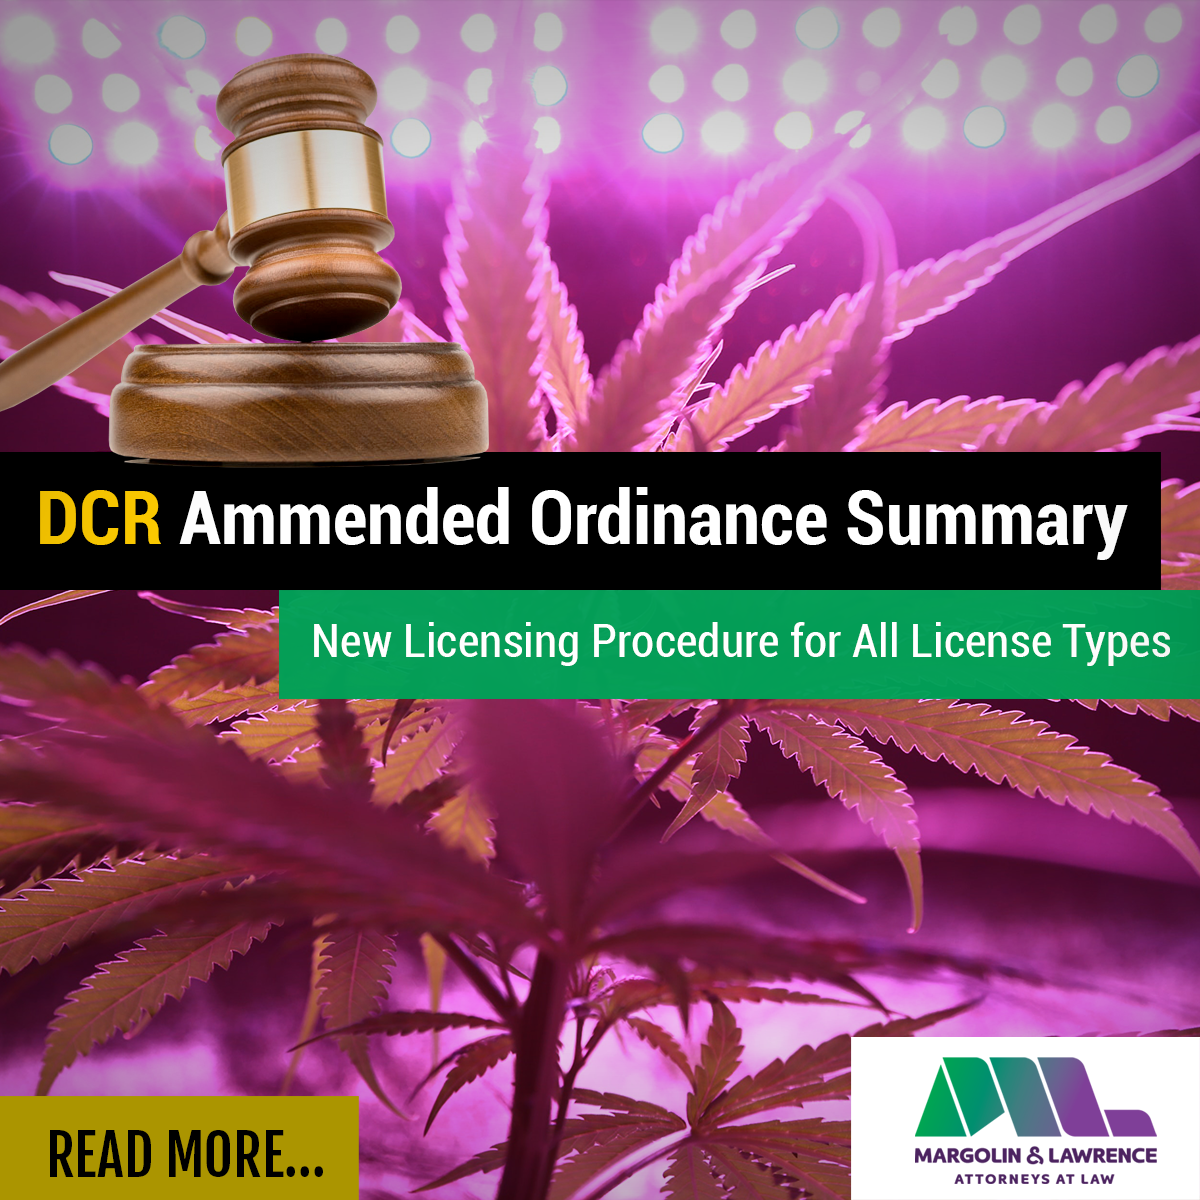 DCR Amended Ordinance Summary - July 1, 2020 City Council Meeting